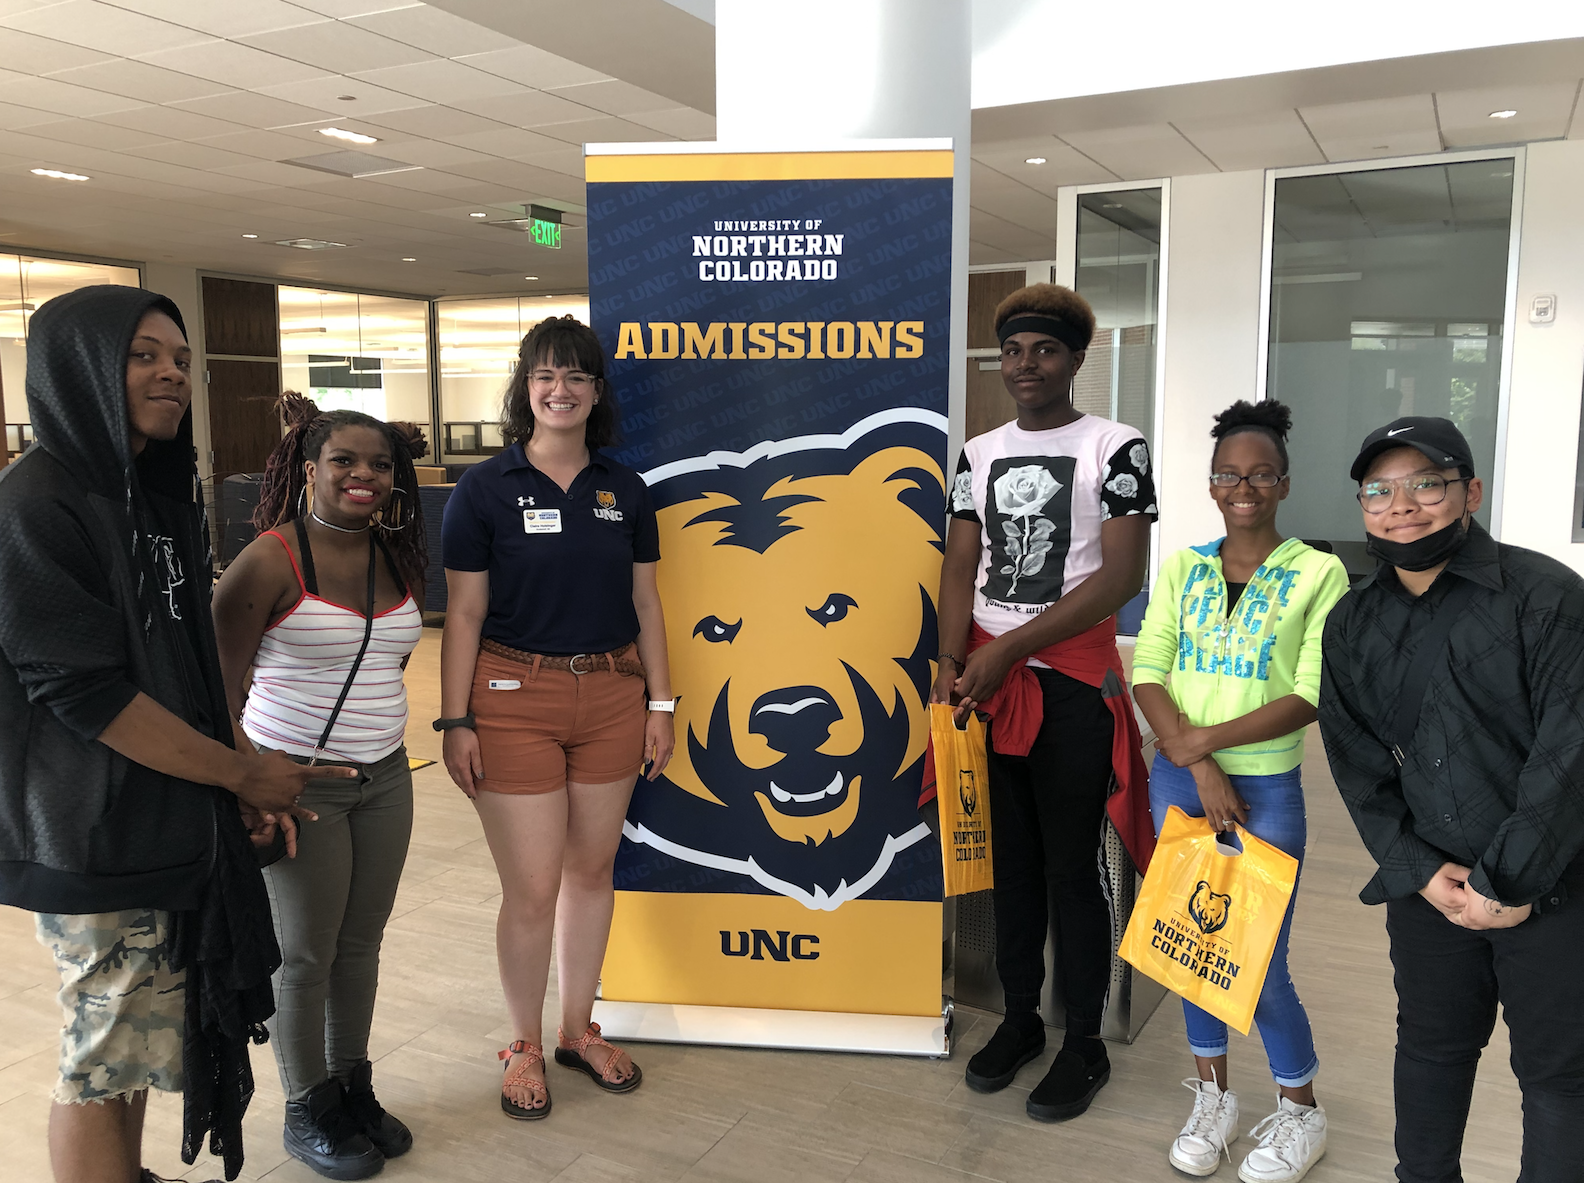 Prospective students and a tour guide at the University of Northern Colorado